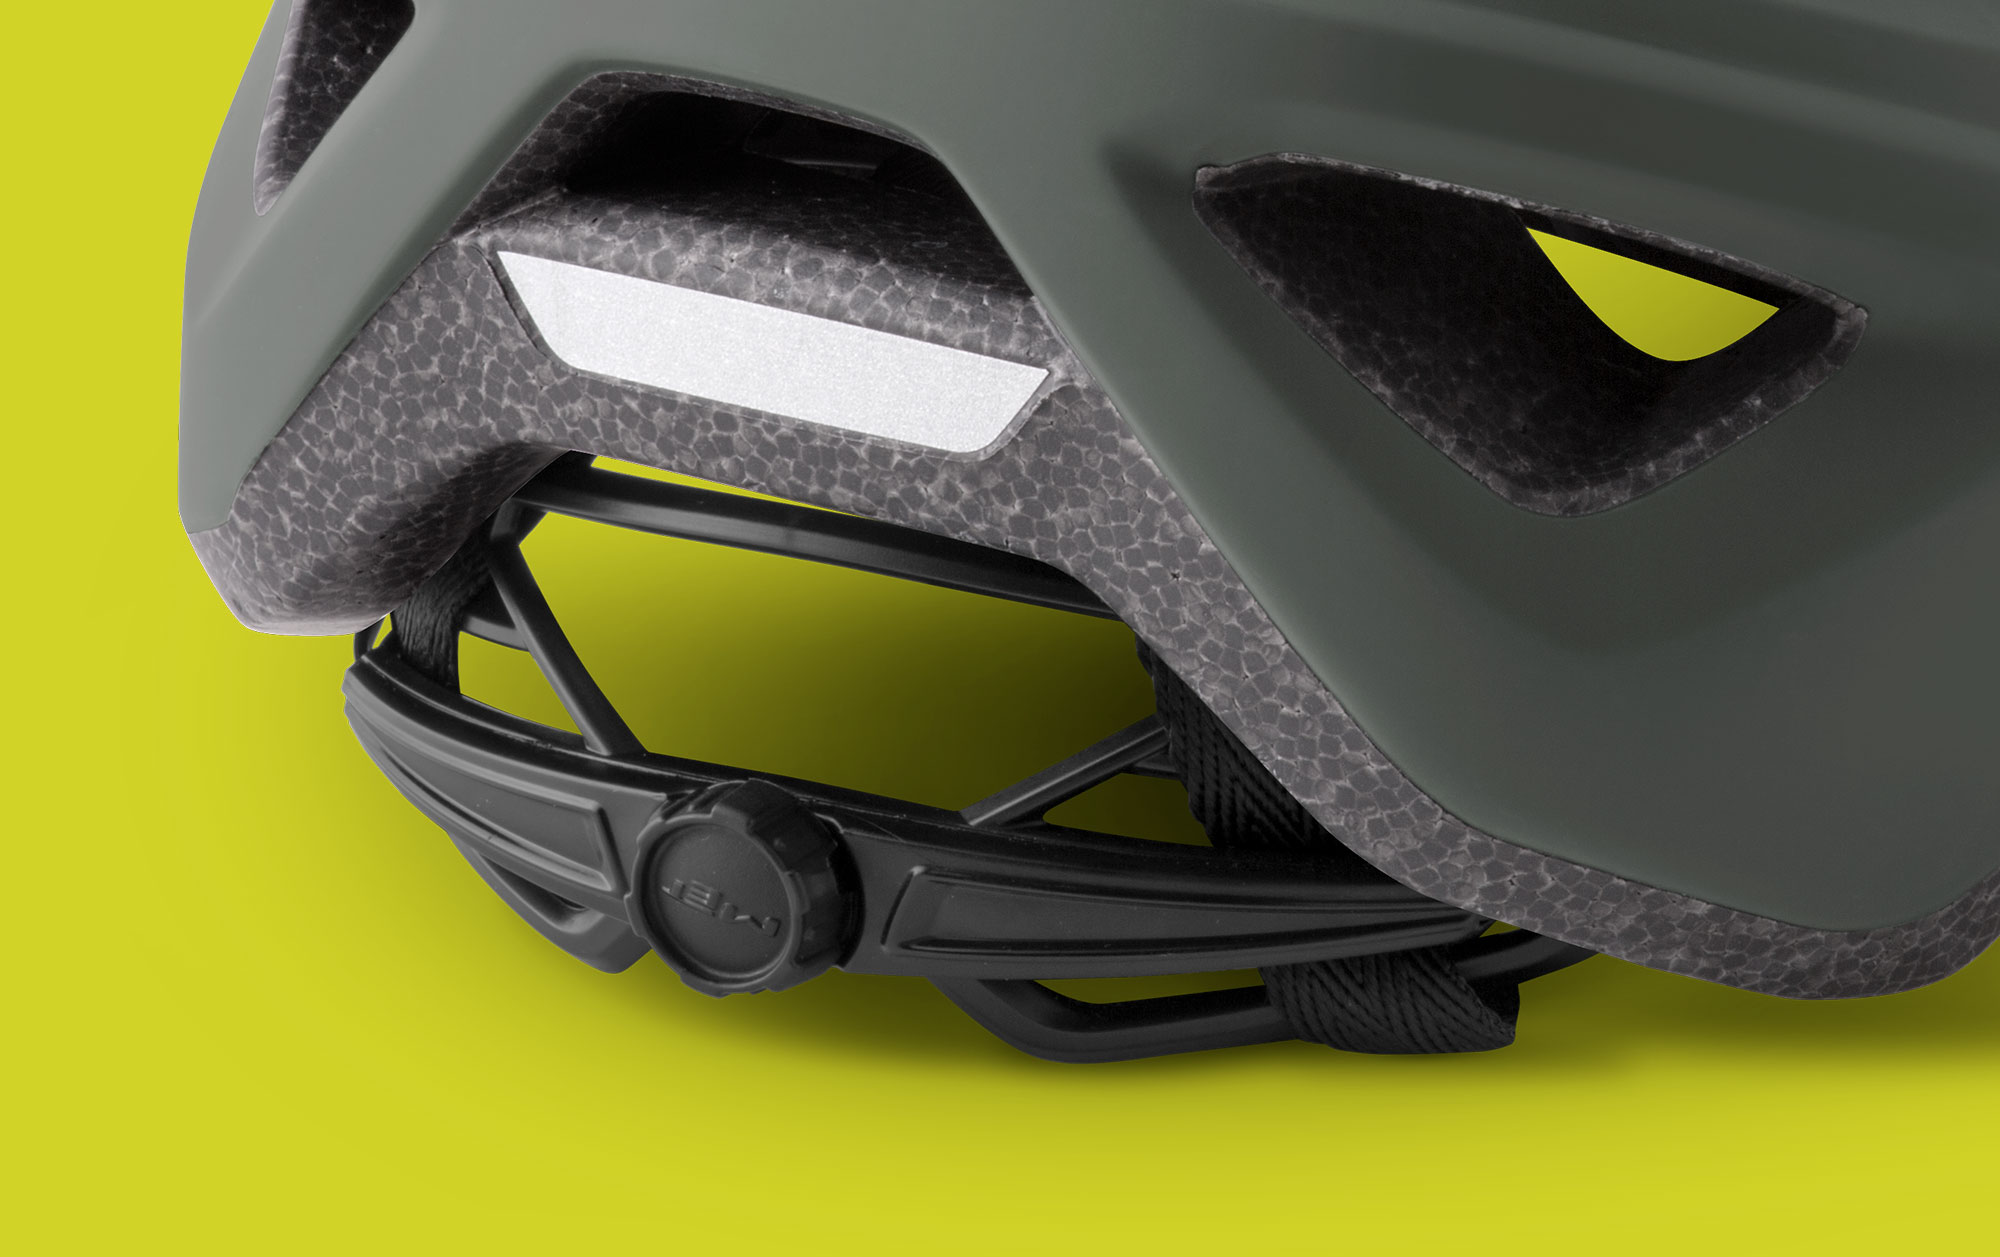 MET Echo Trail, Cross Country and E-MTB Helmet Retention System